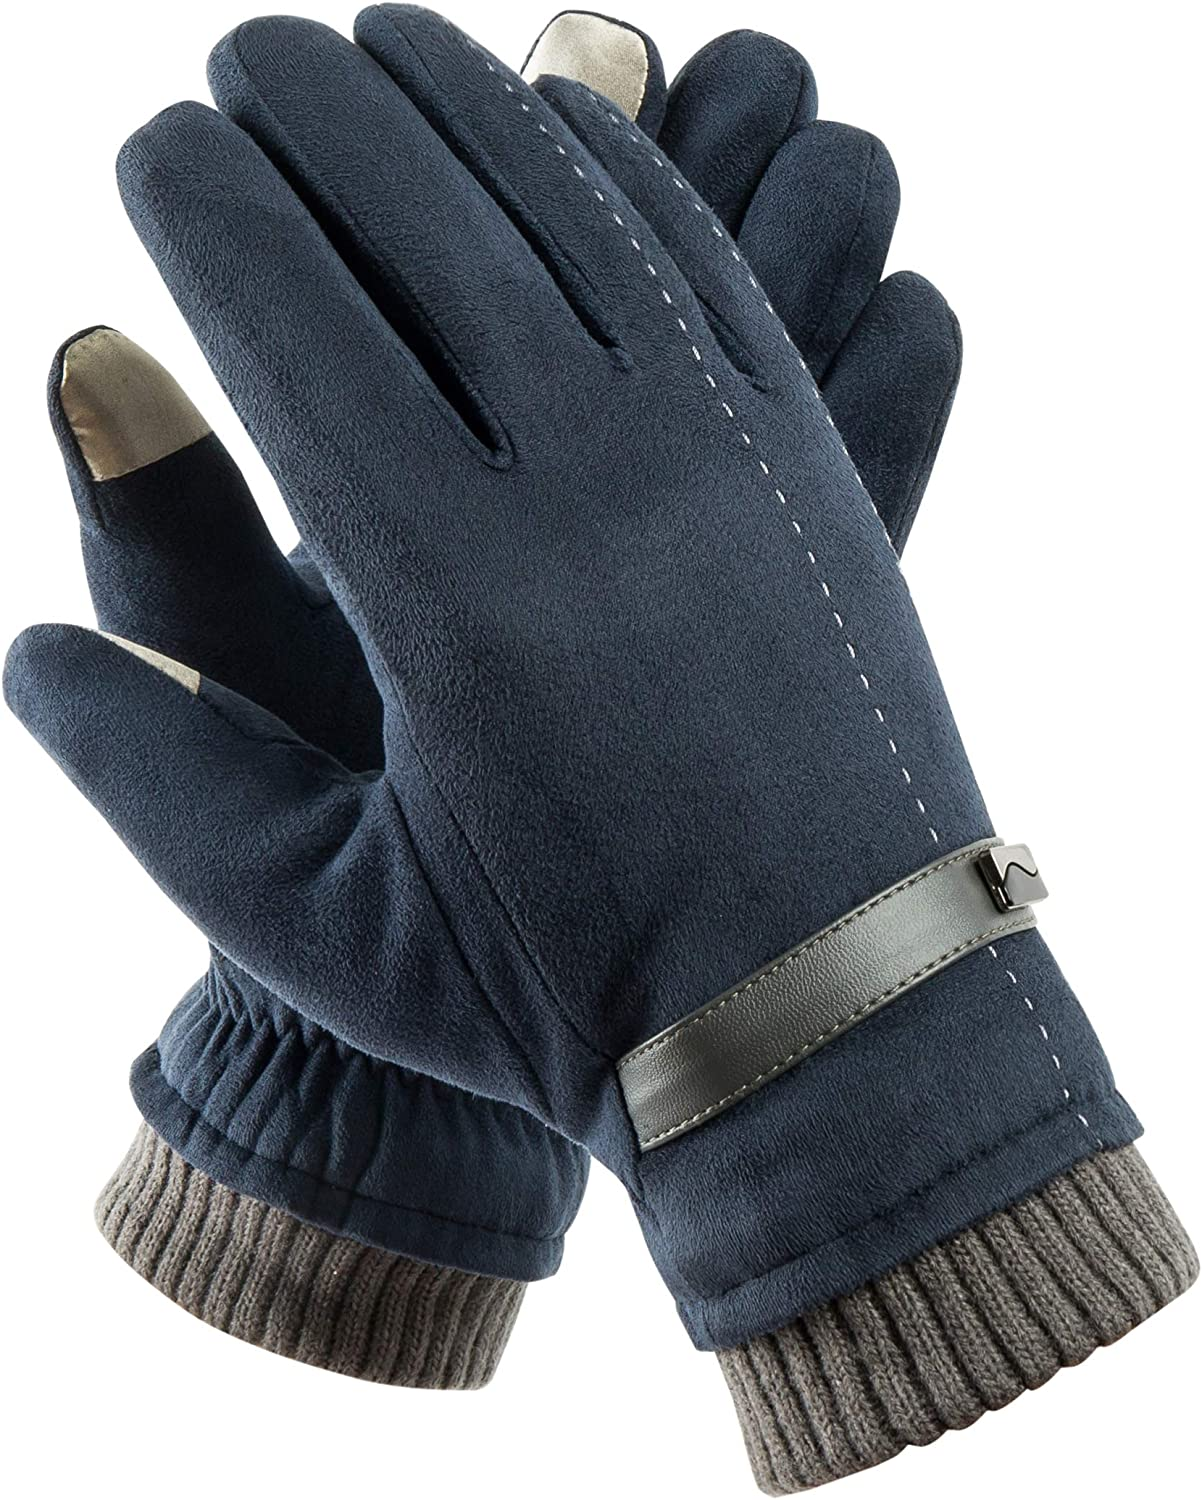 Men Touch Screen Leather Winter Warm Gloves Thermal Fleece Lined Driving Gift